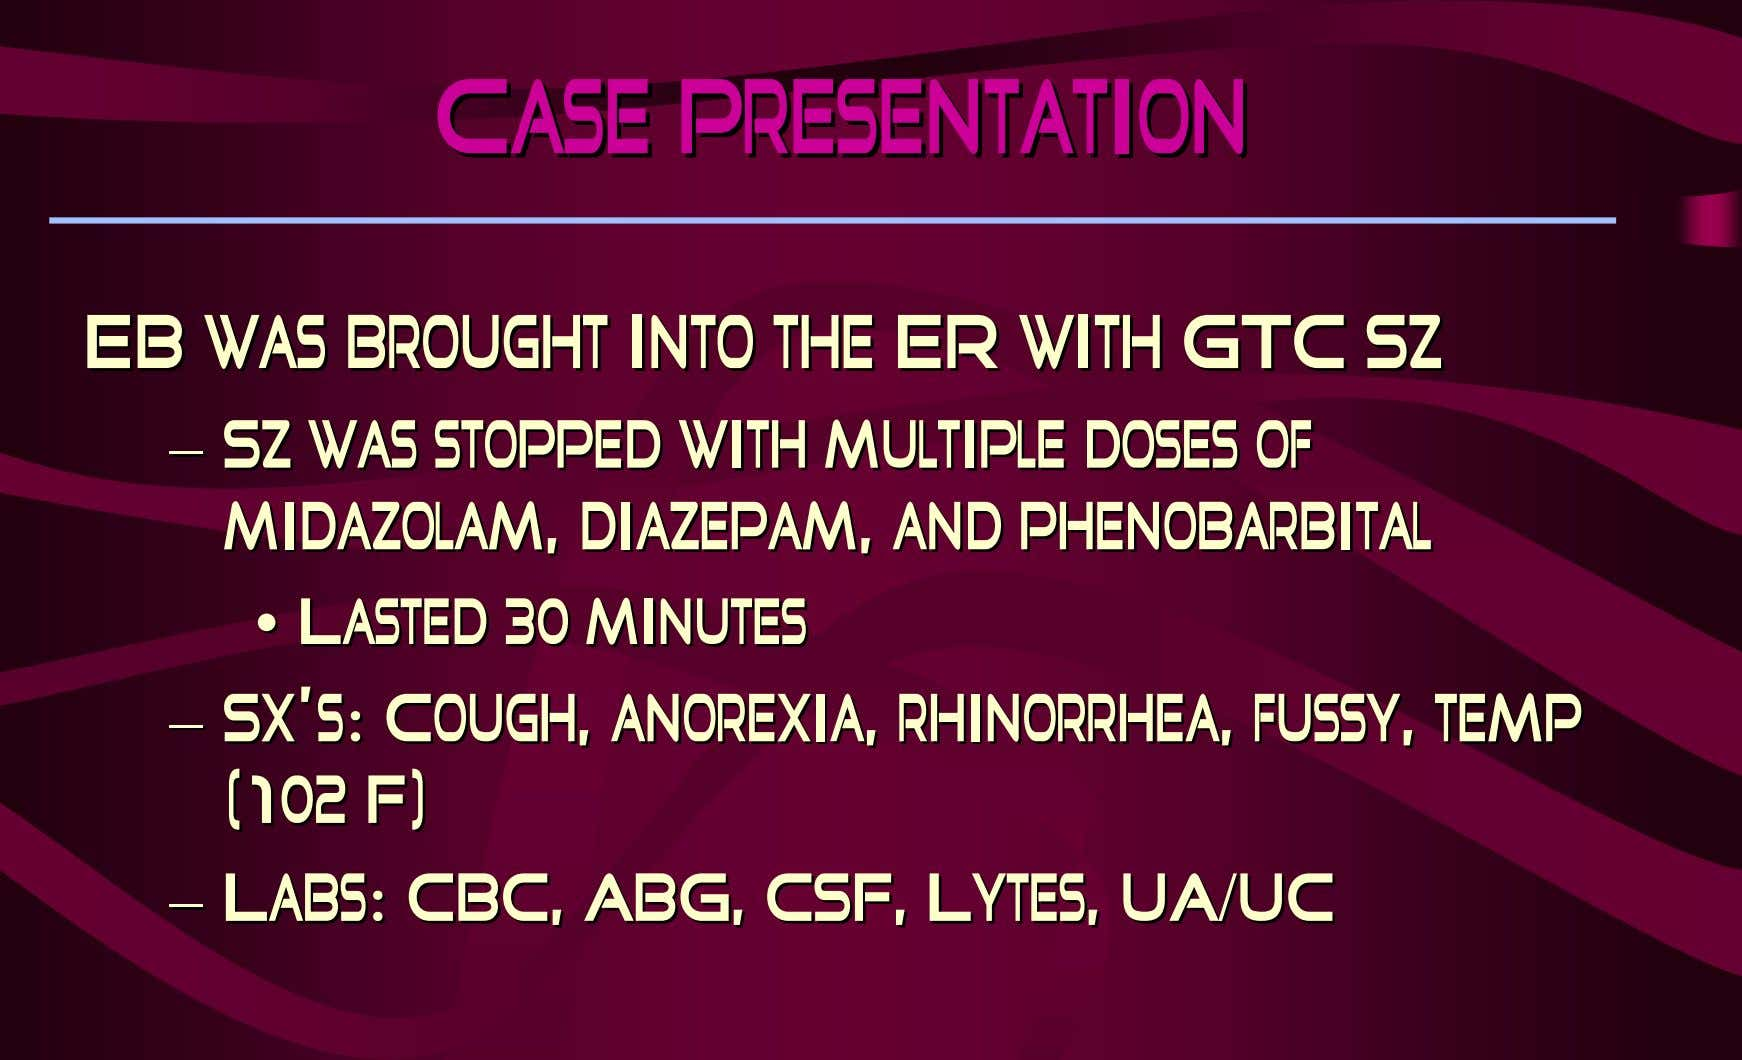 Case Presentation Case Presentation EBEB waswas broughtbrought intointo thethe ERER withwith GTCGTC SzSz –– SzSz